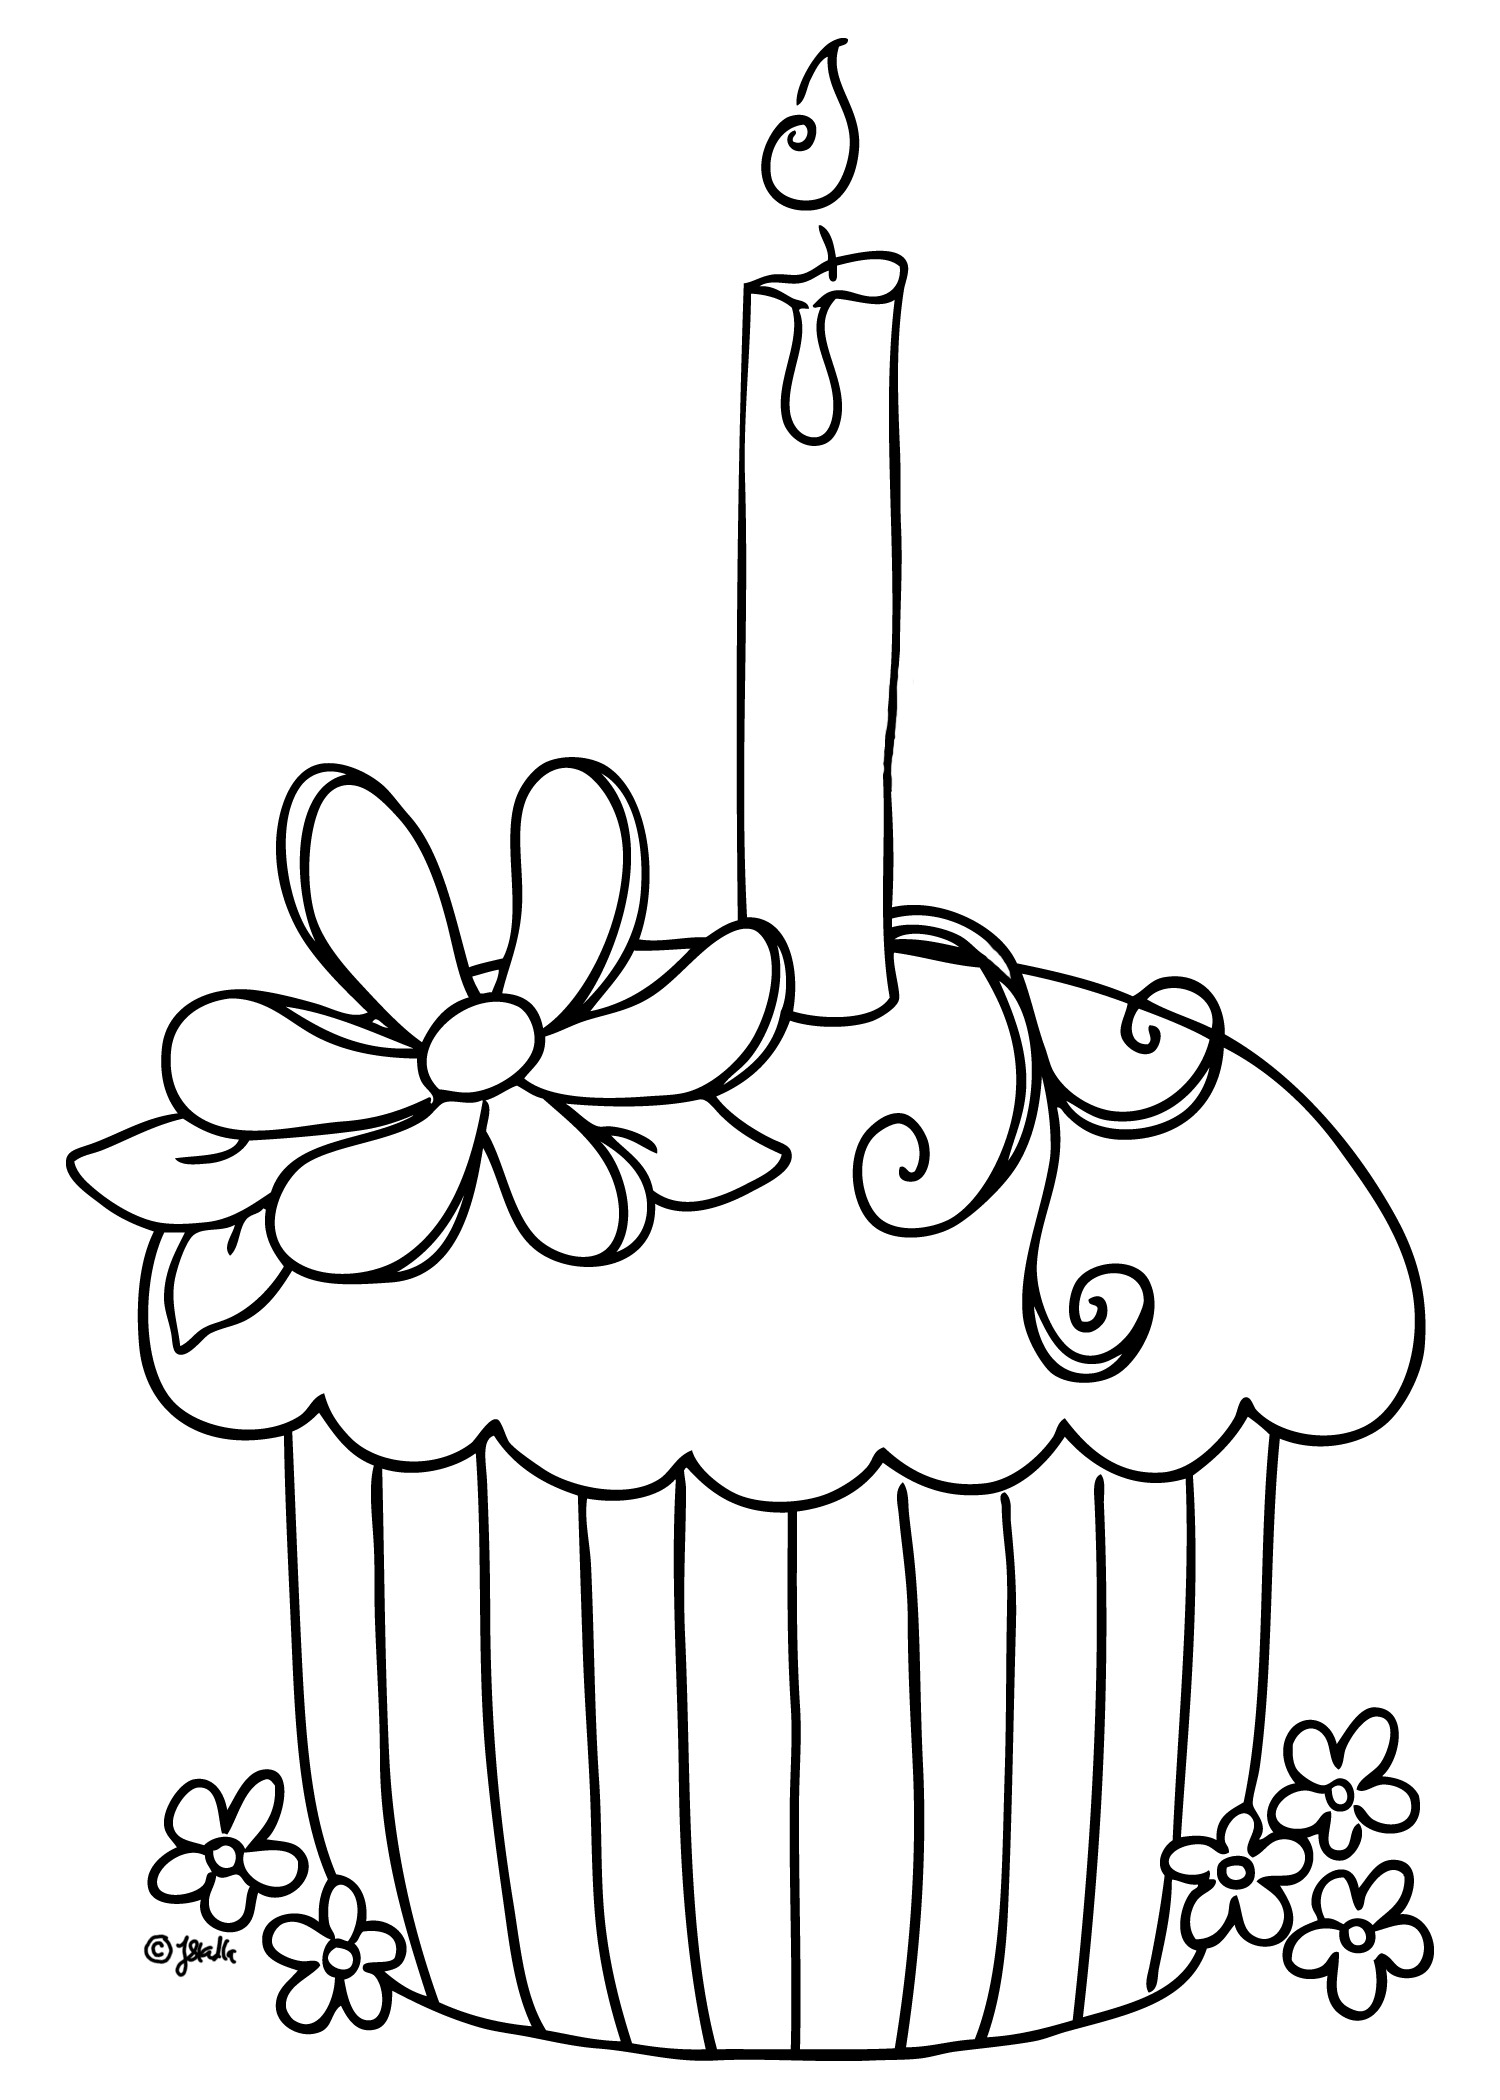 cupcake coloring pages - cupcake coloring pages